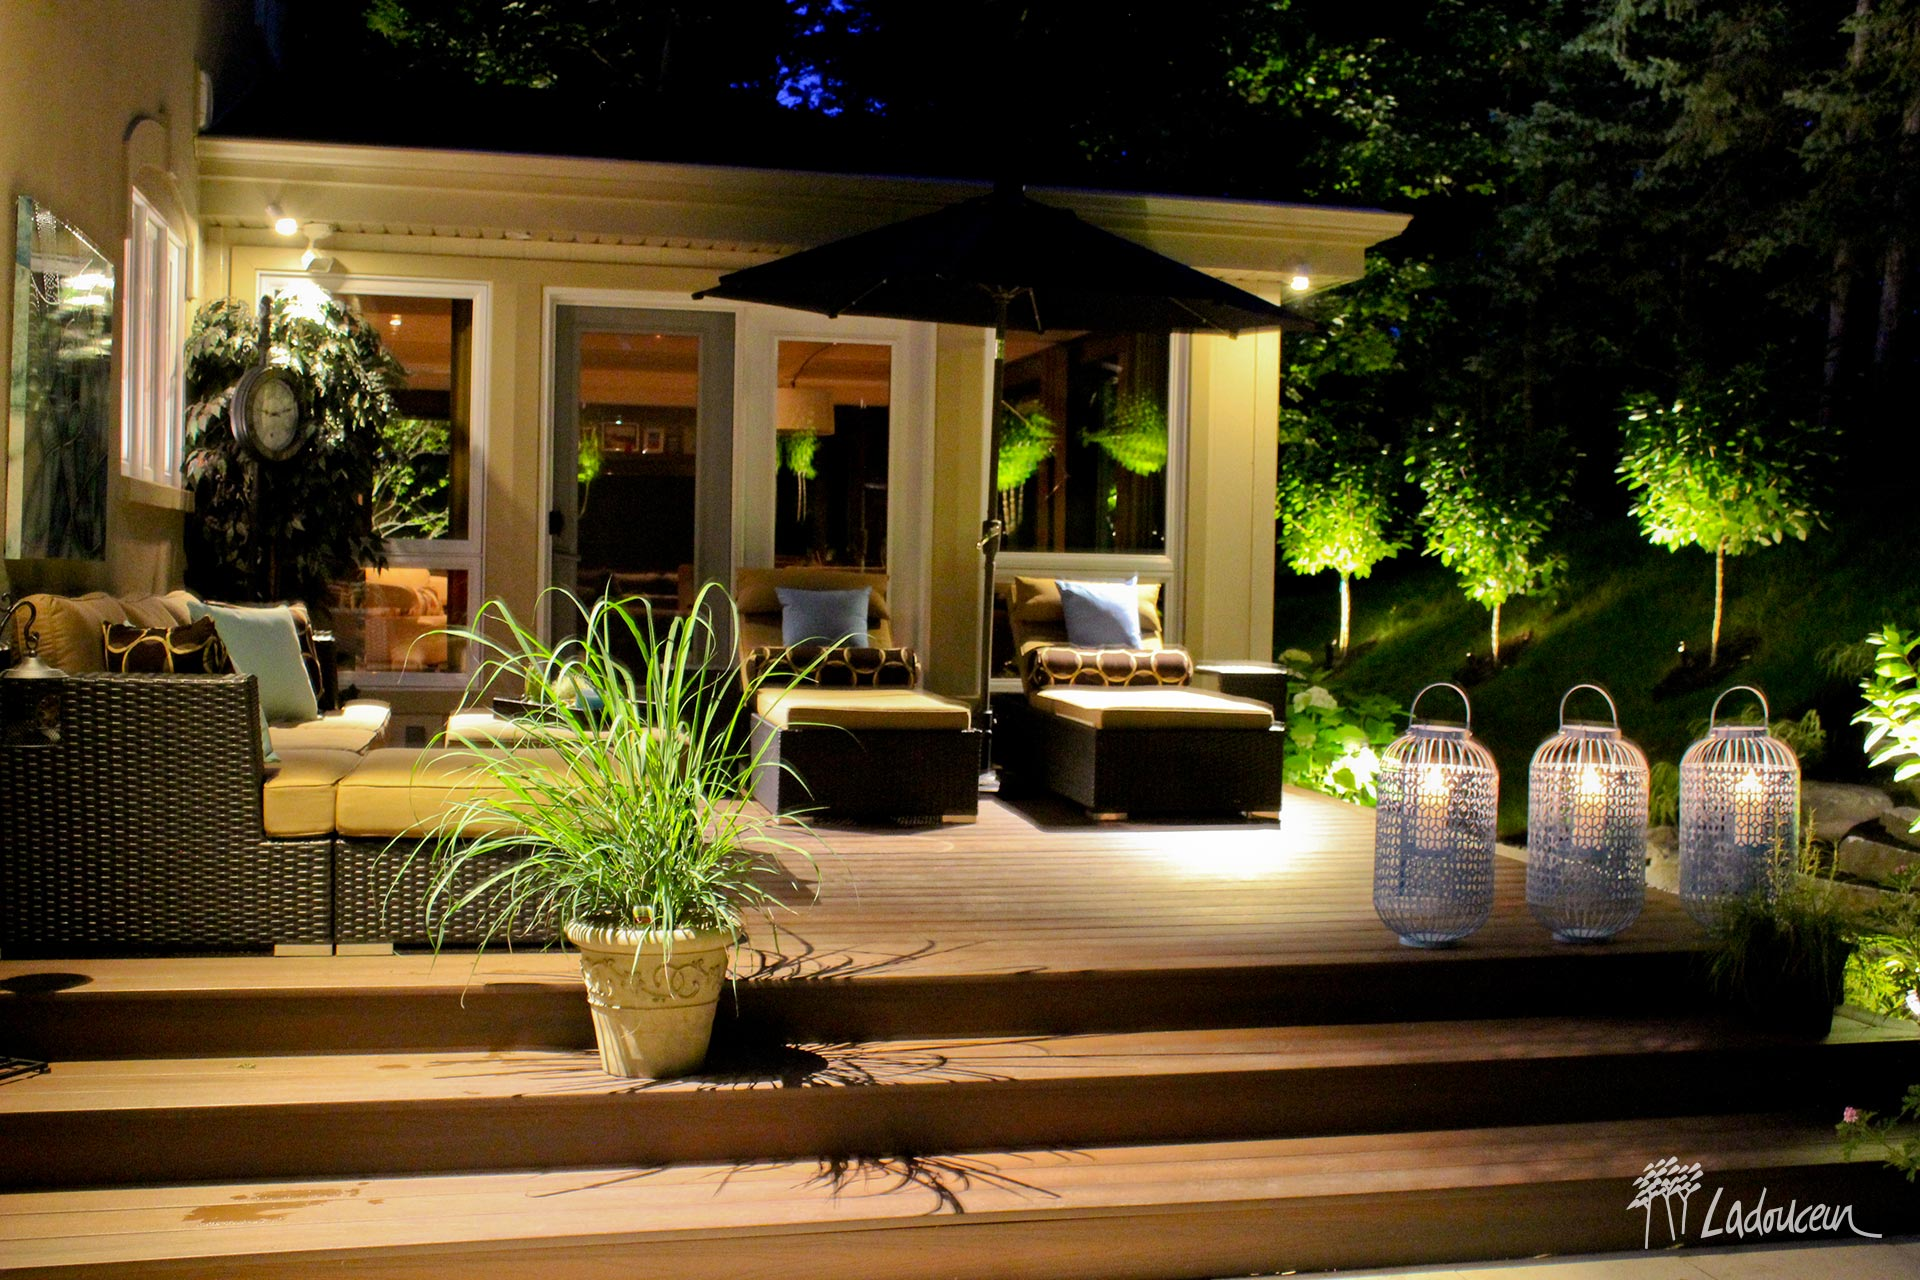 Eclairage paysager terrasse bois vegetaux mobilier lounge innovations paysagees ladouceur